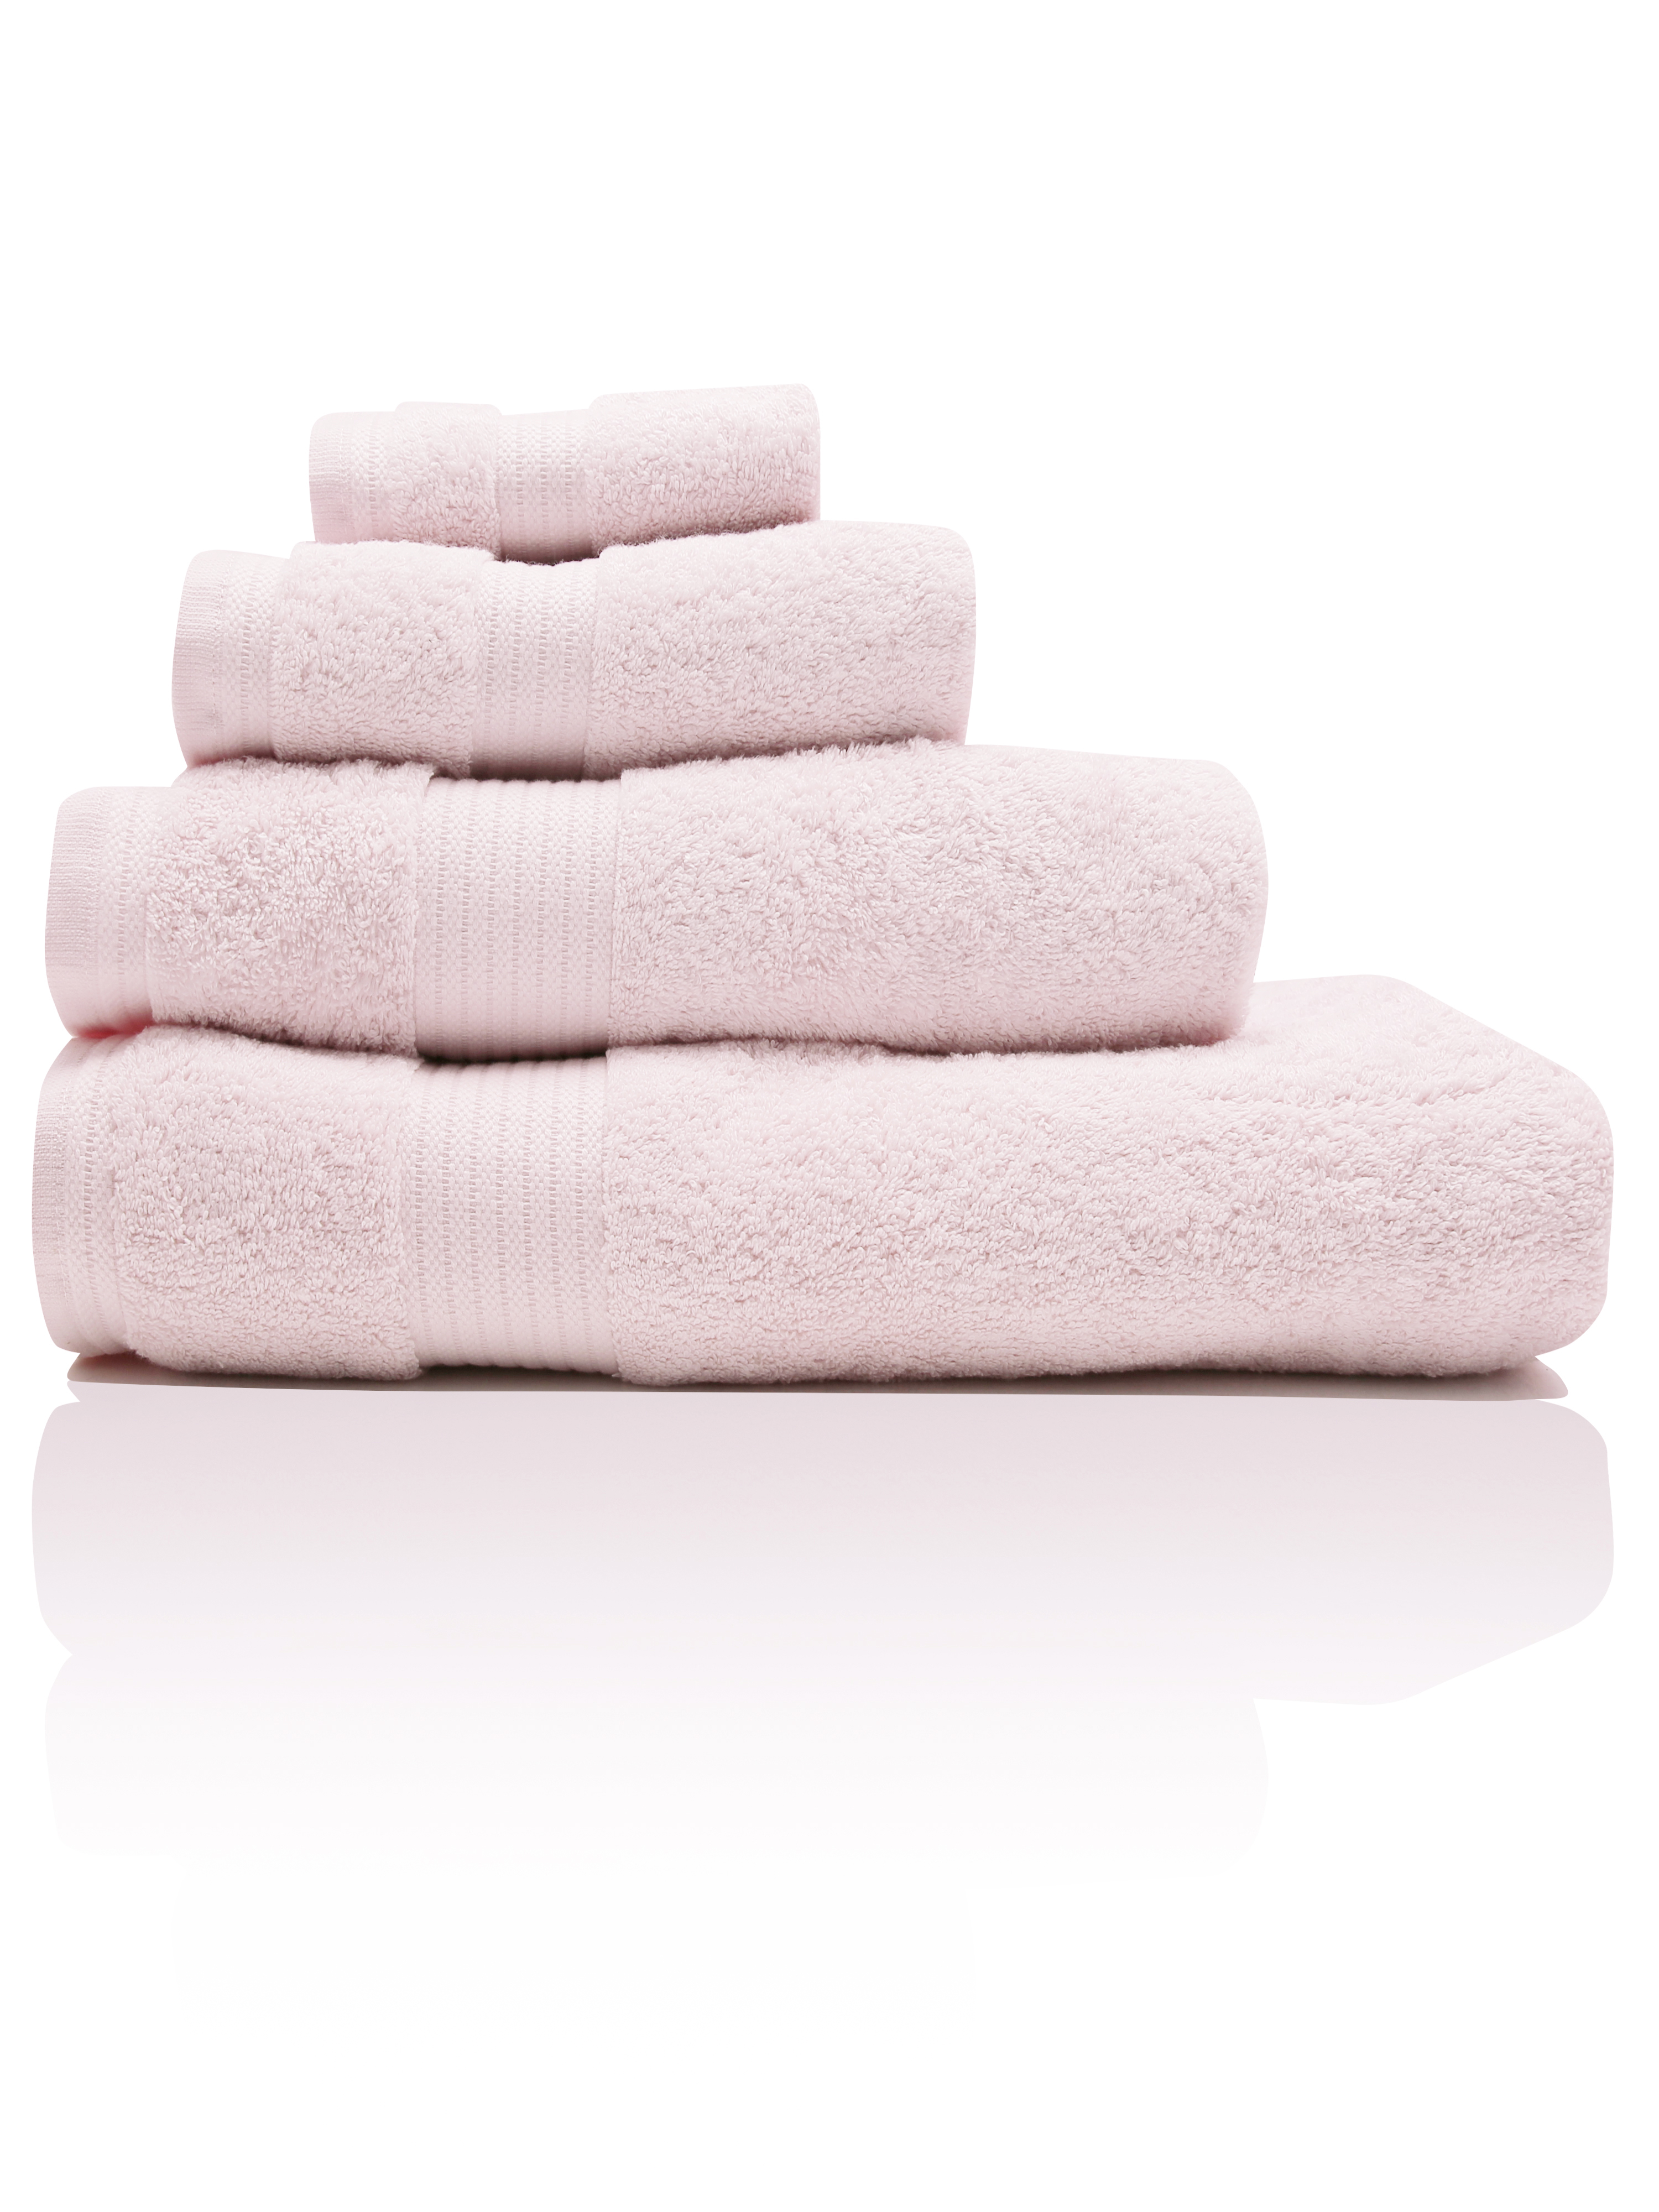 Pink Combed Cotton Towels